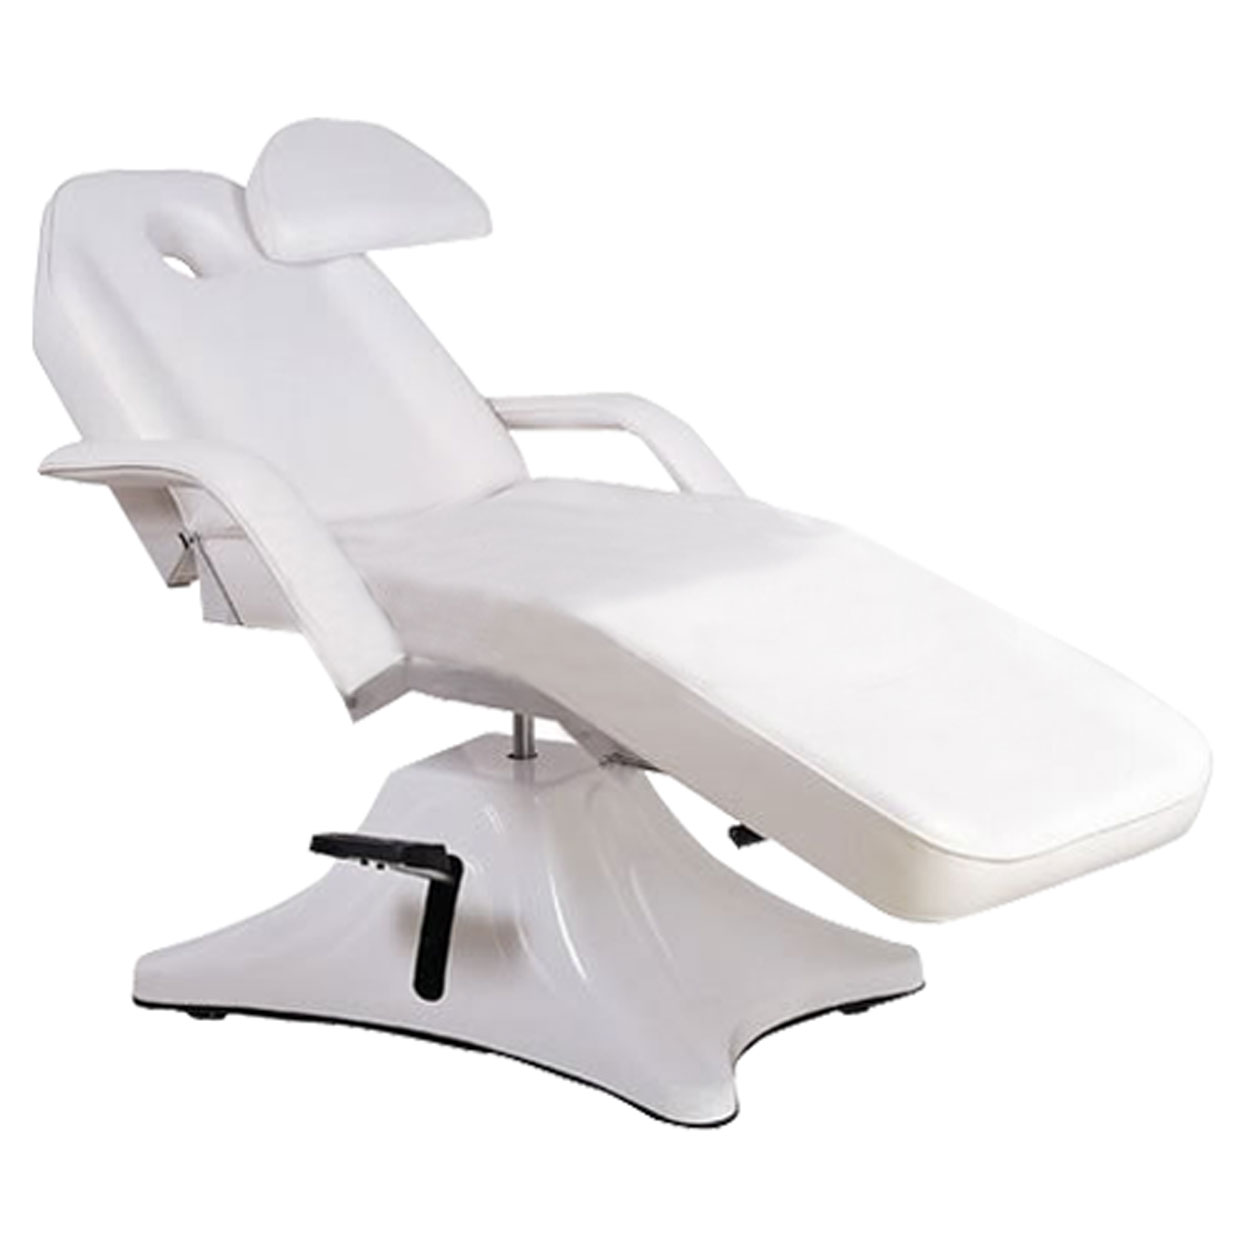 Woodlawn  <br>     Facial Bed alternative product image 1